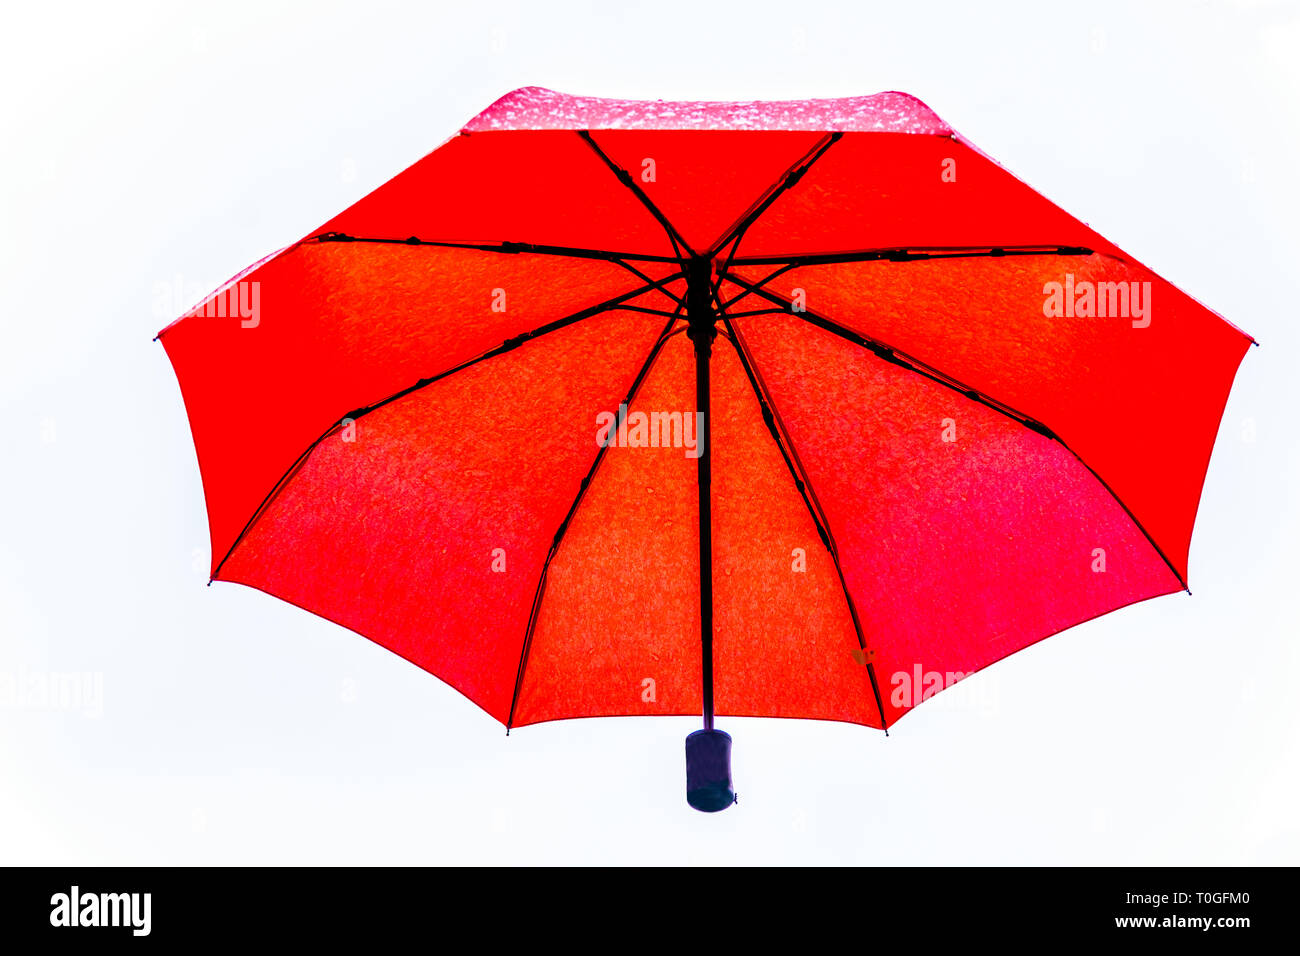 Red Umbrella floating in the air under cloudy sky - Stock Image